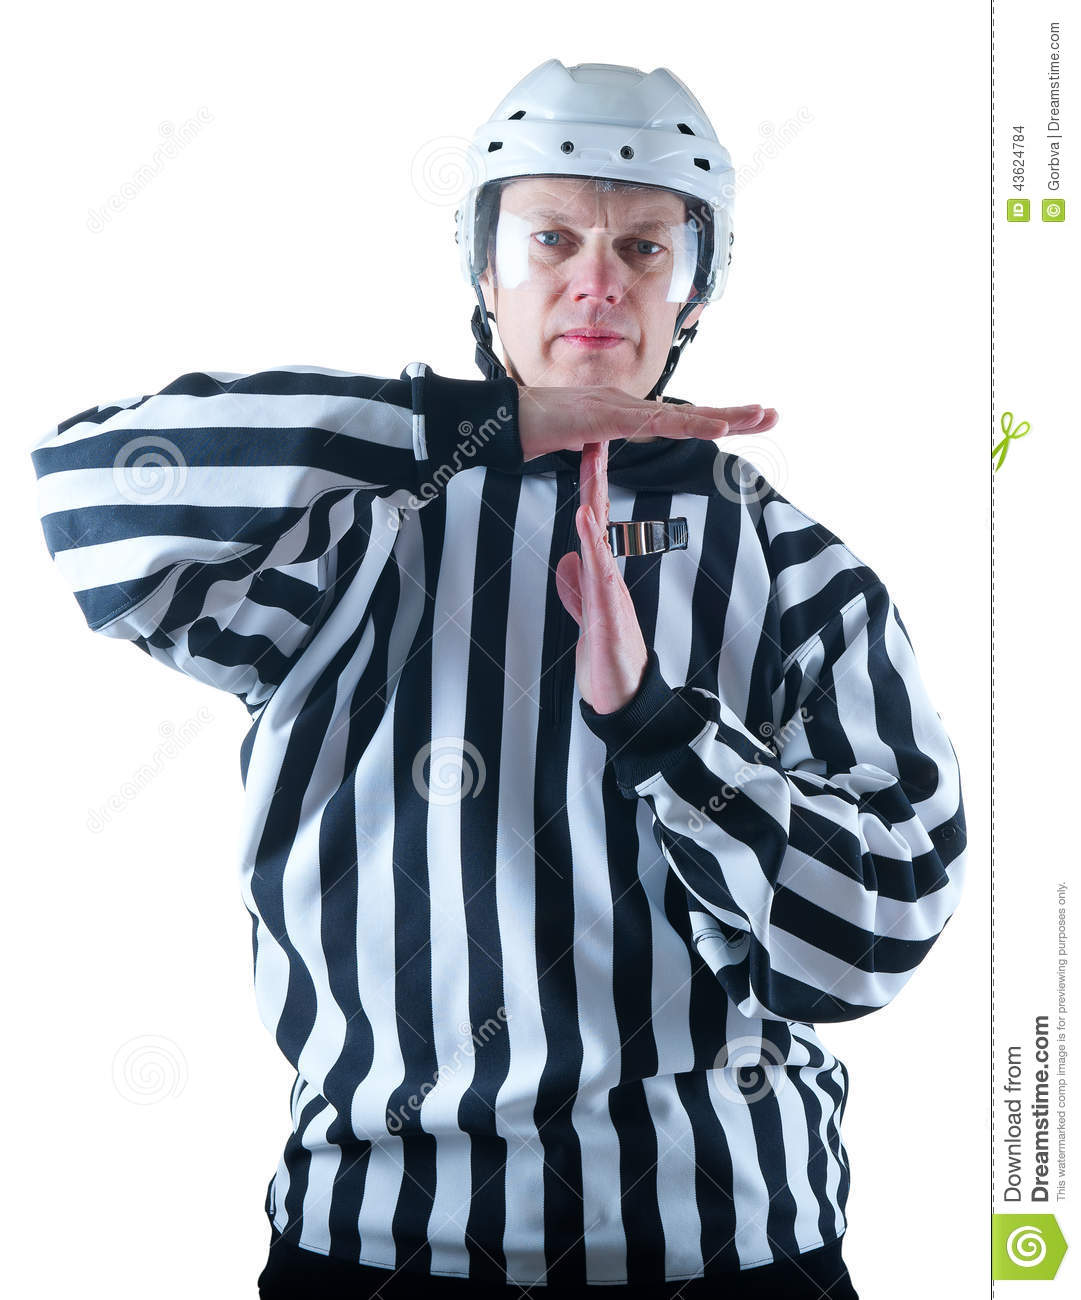 how to become a hockey referee